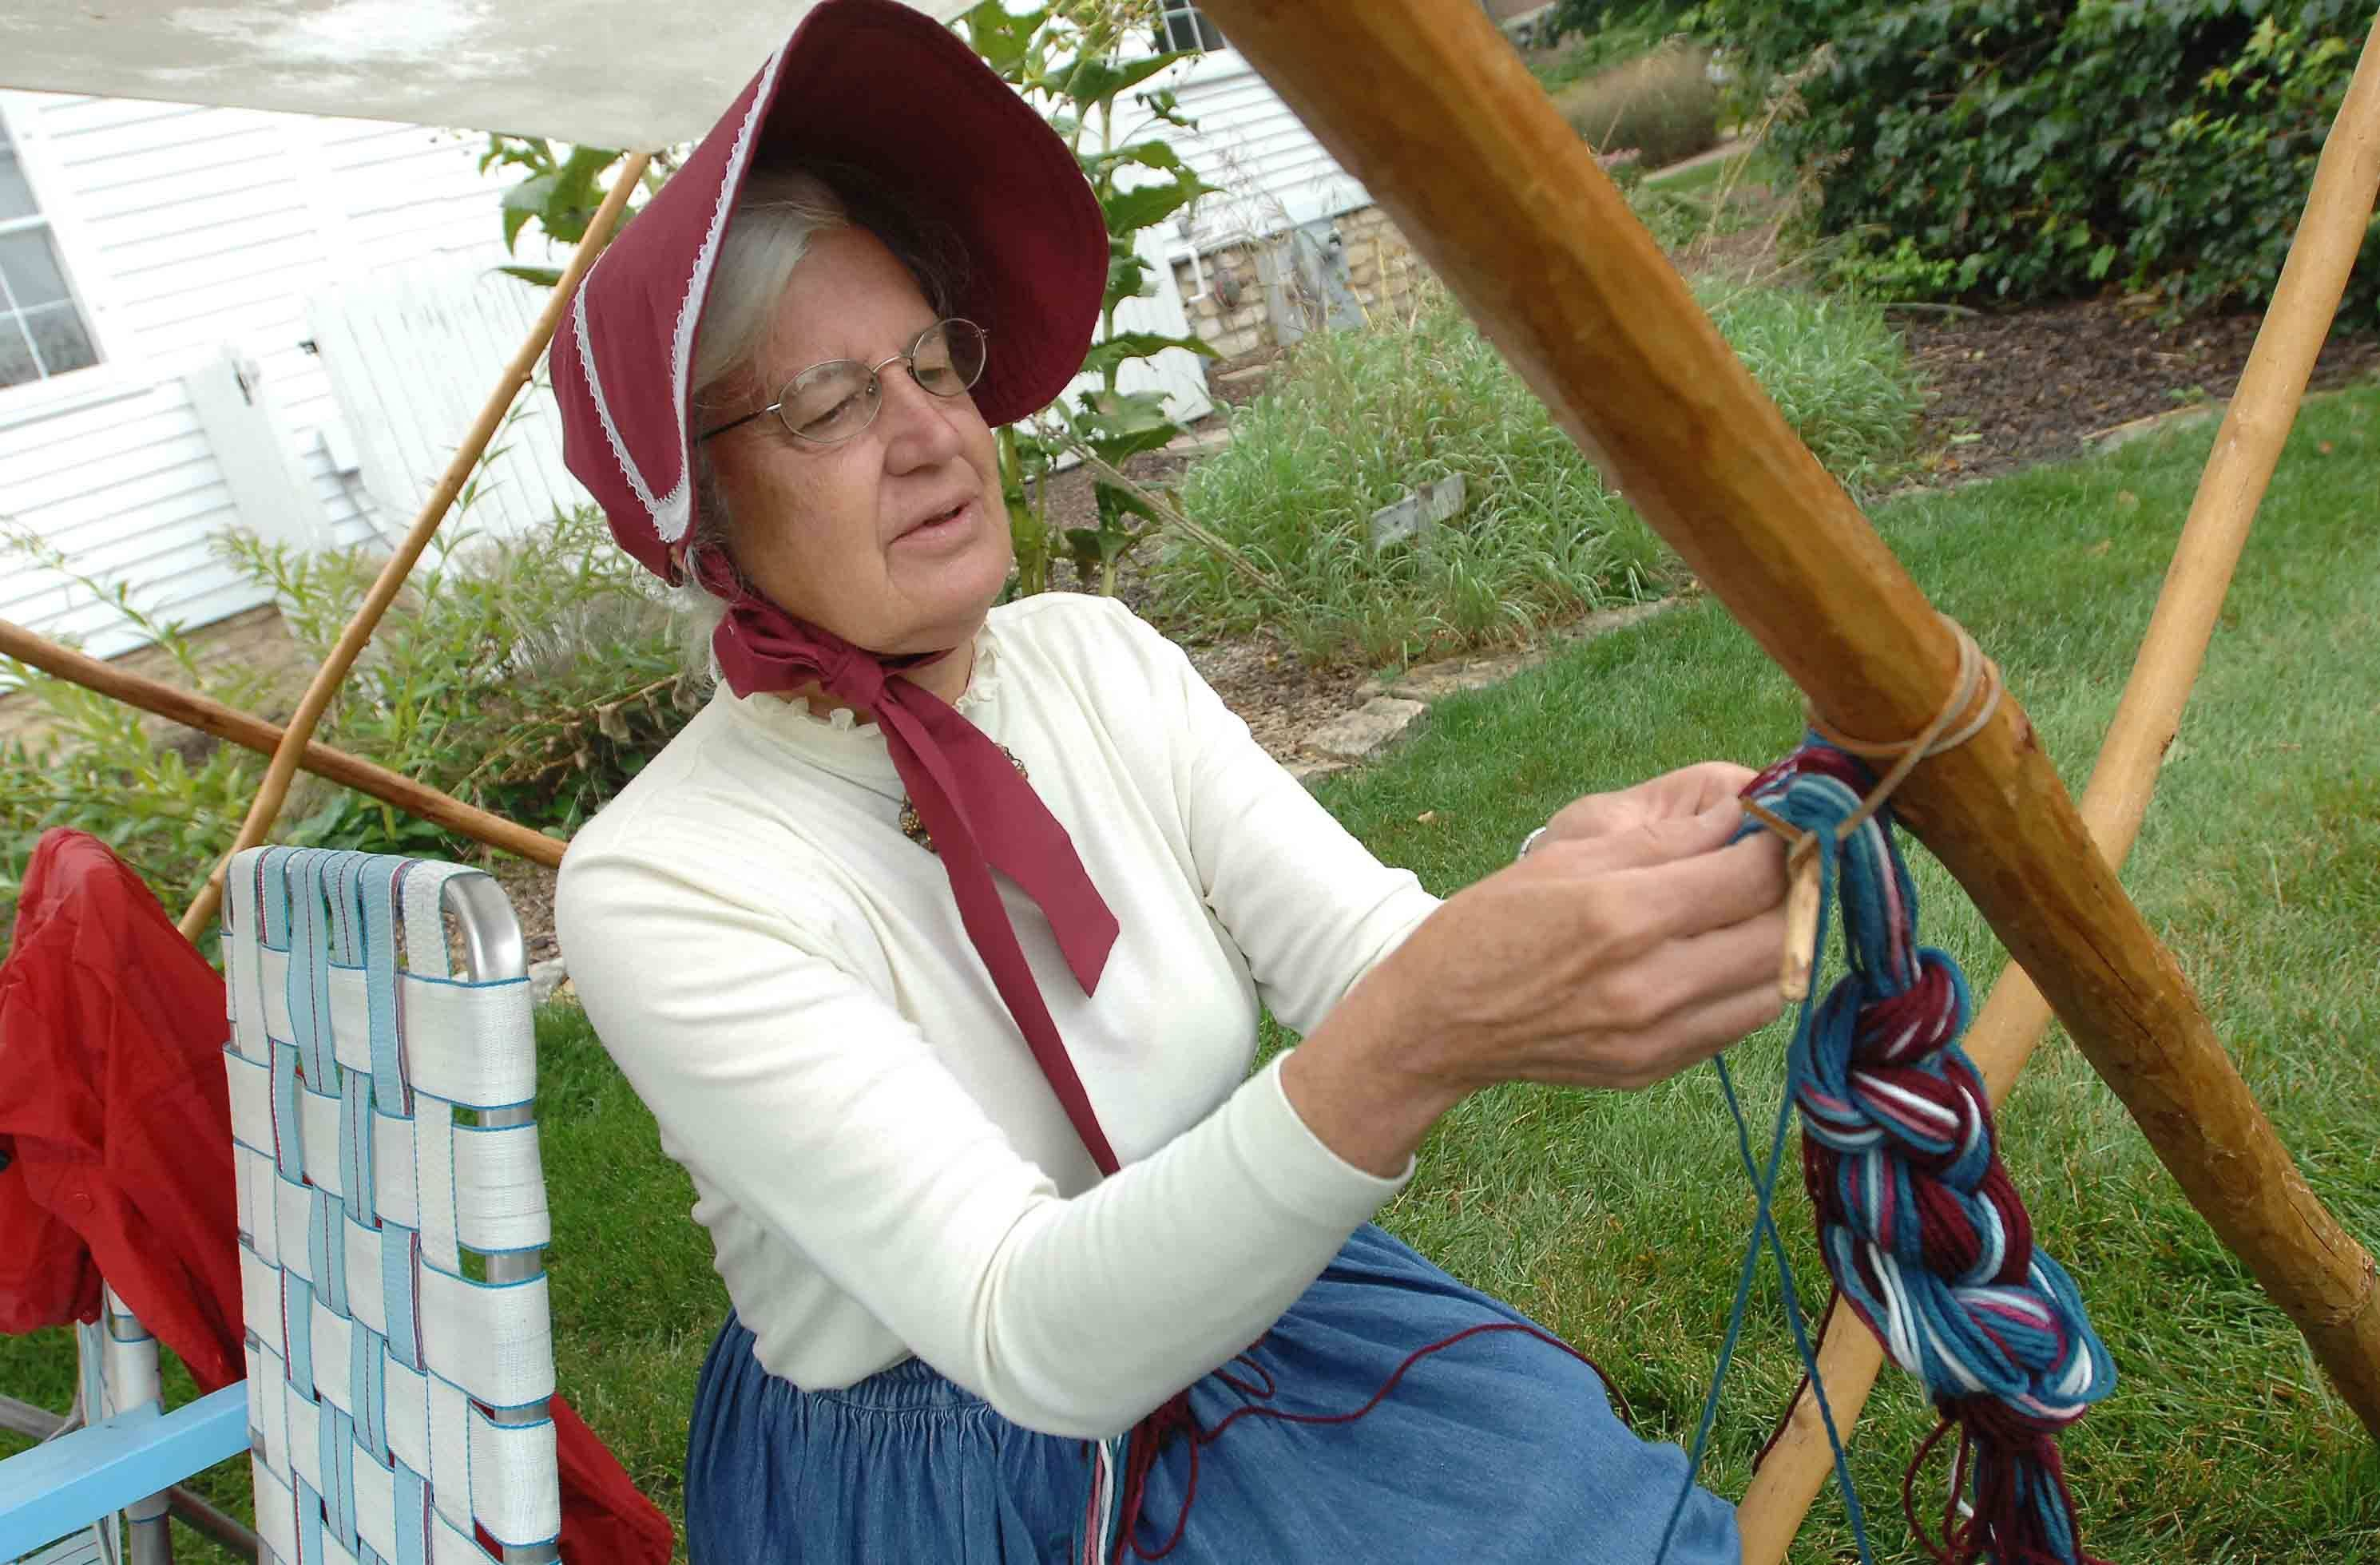 There will be a variety of pioneer craft demonstrations this weekend during Lisle Depot Days, which runs Saturday and Sunday at the Museums at Lisle Station Park, 921 School St.